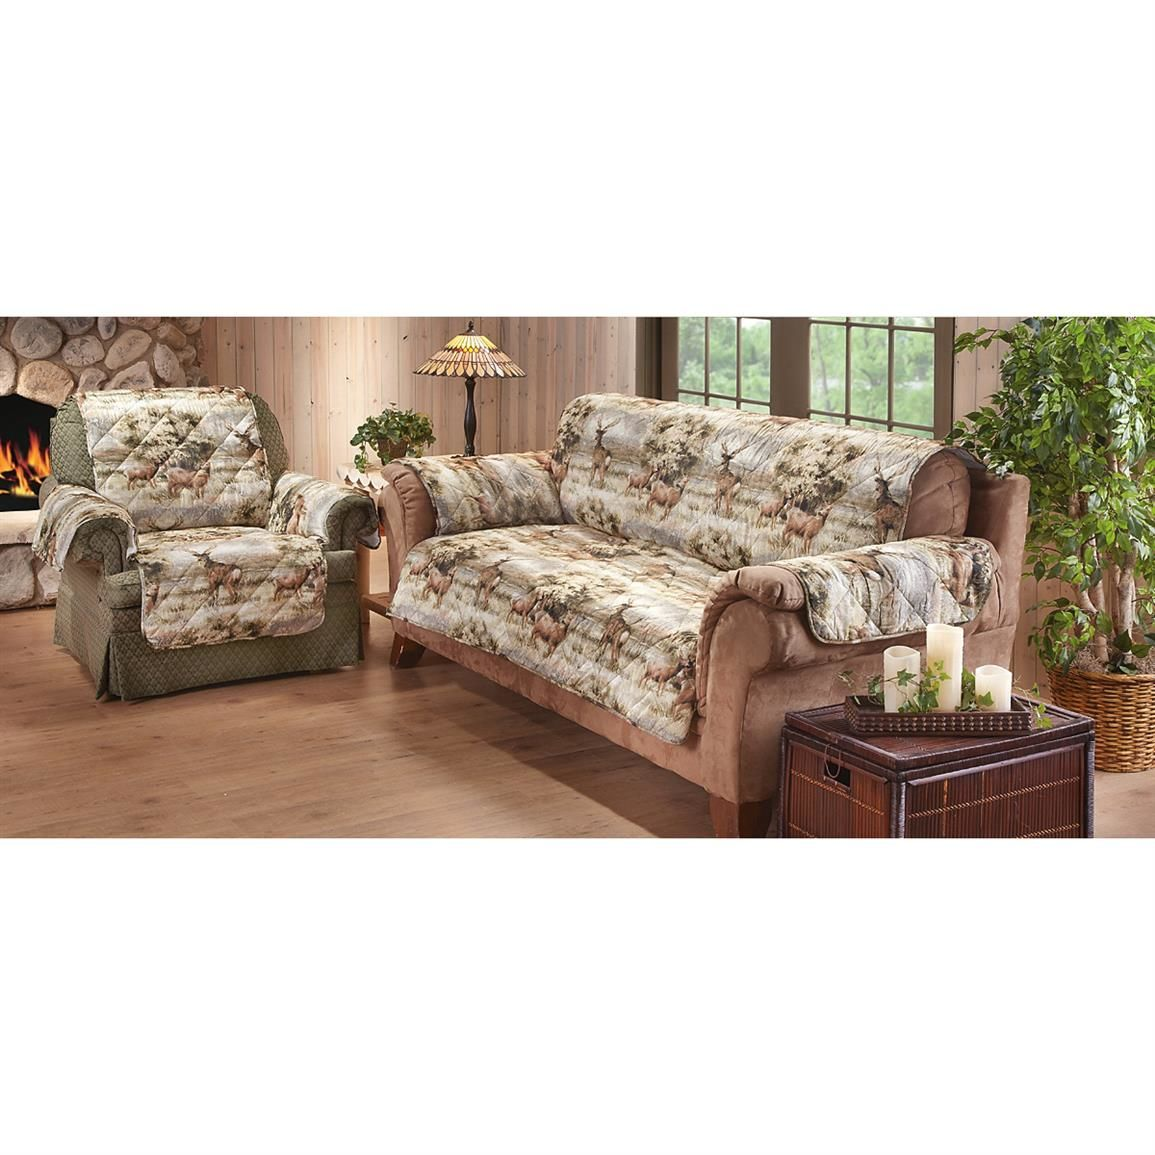 fantastic camo sofa cover concept-Beautiful Camo sofa Cover Portrait